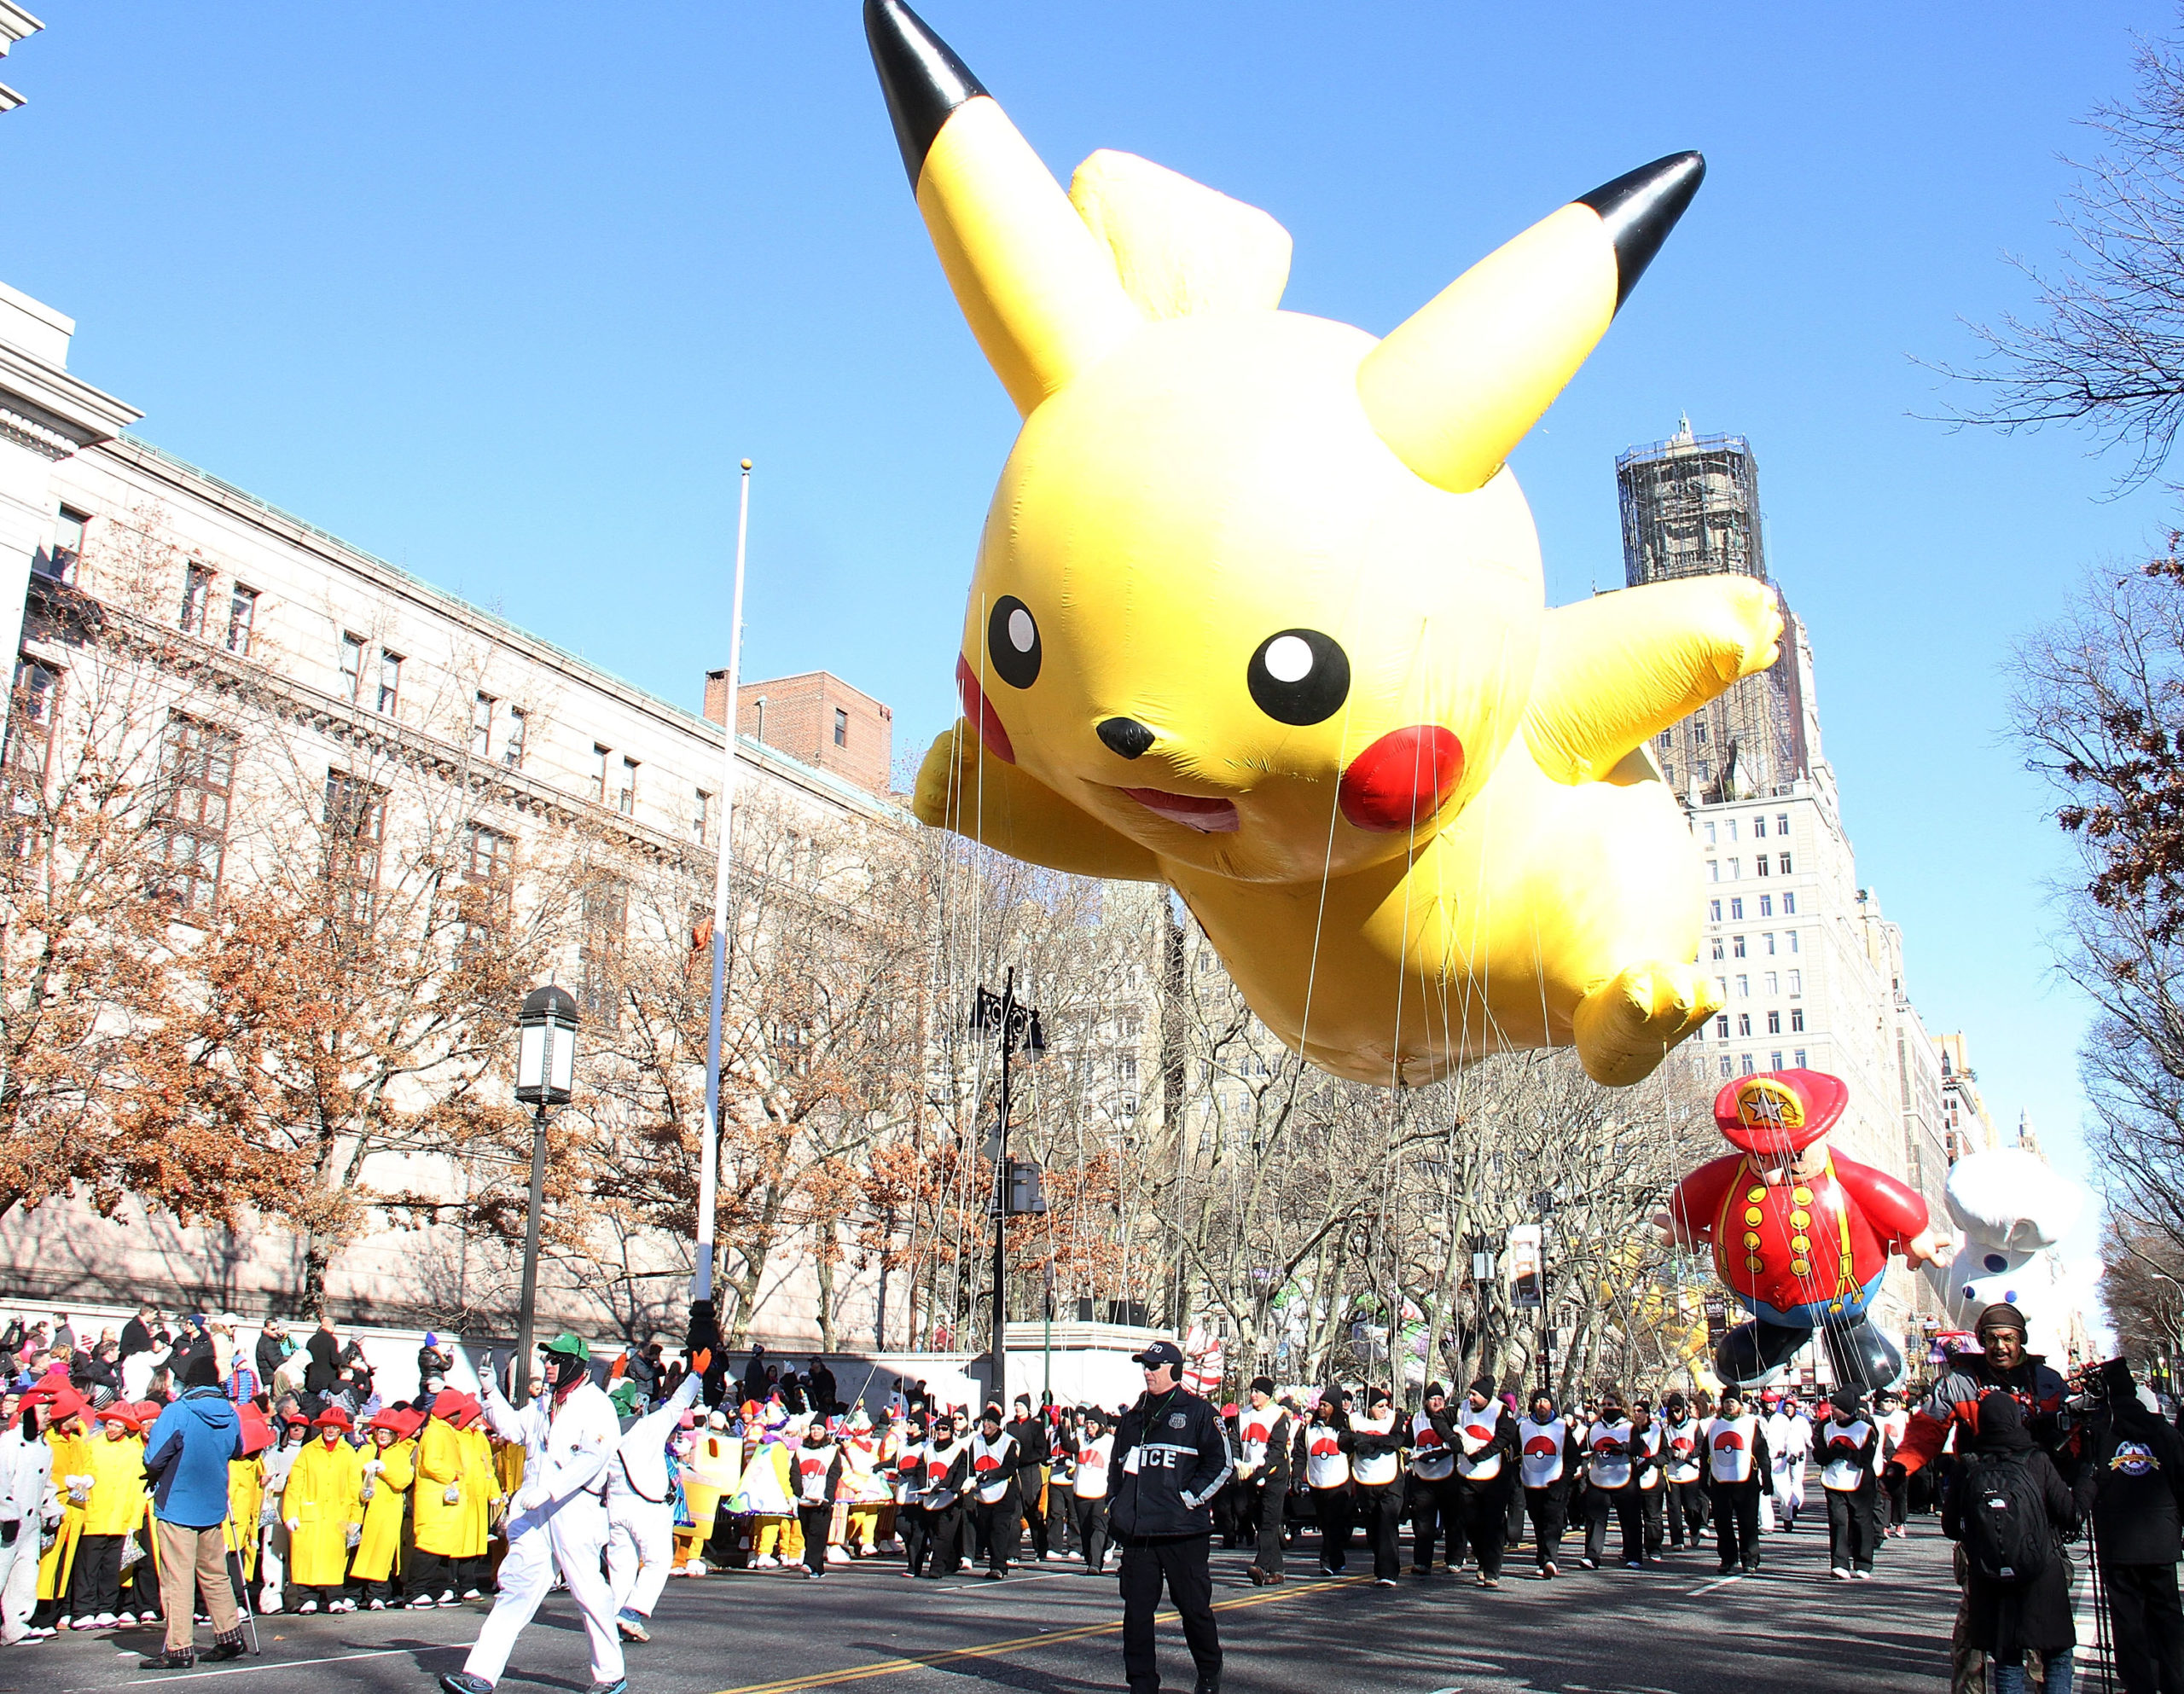 Macy Thanksgiving Day Parade 2021 Takes Major Decision on Crowd And Route!